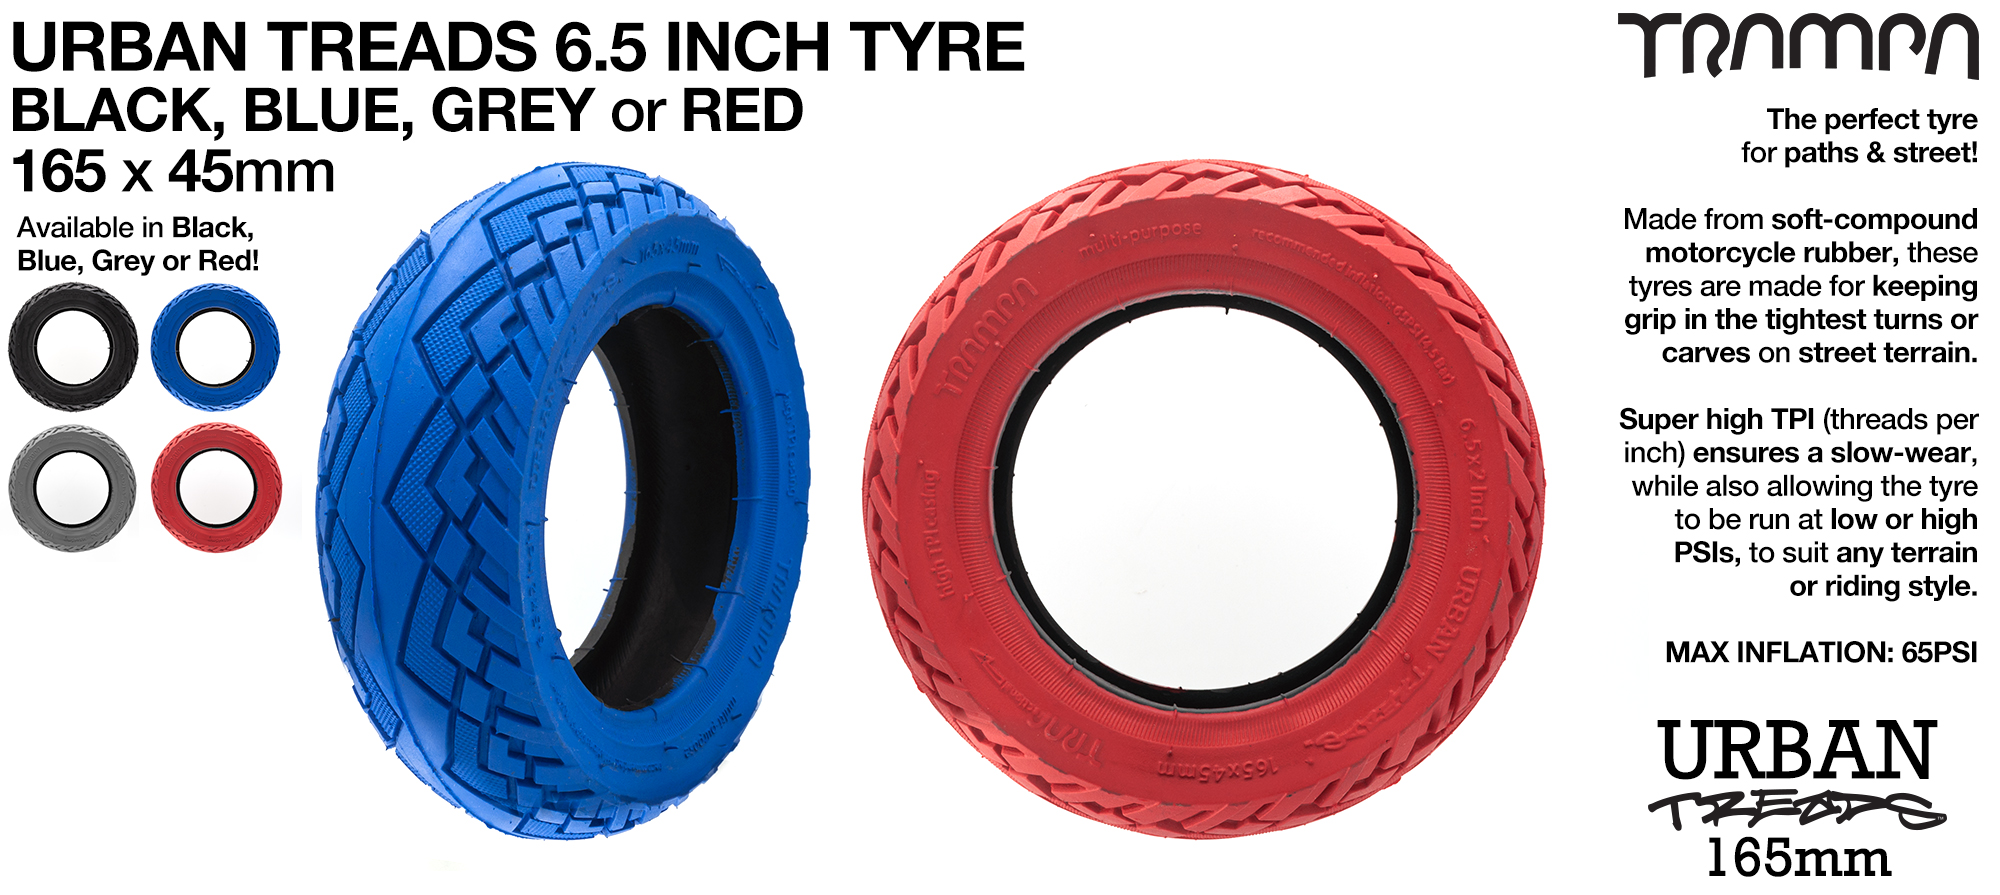 TRAMPA's 6.5 inch URBAN TREADS Tyres is the perfect all round tyre for Urban & City riding